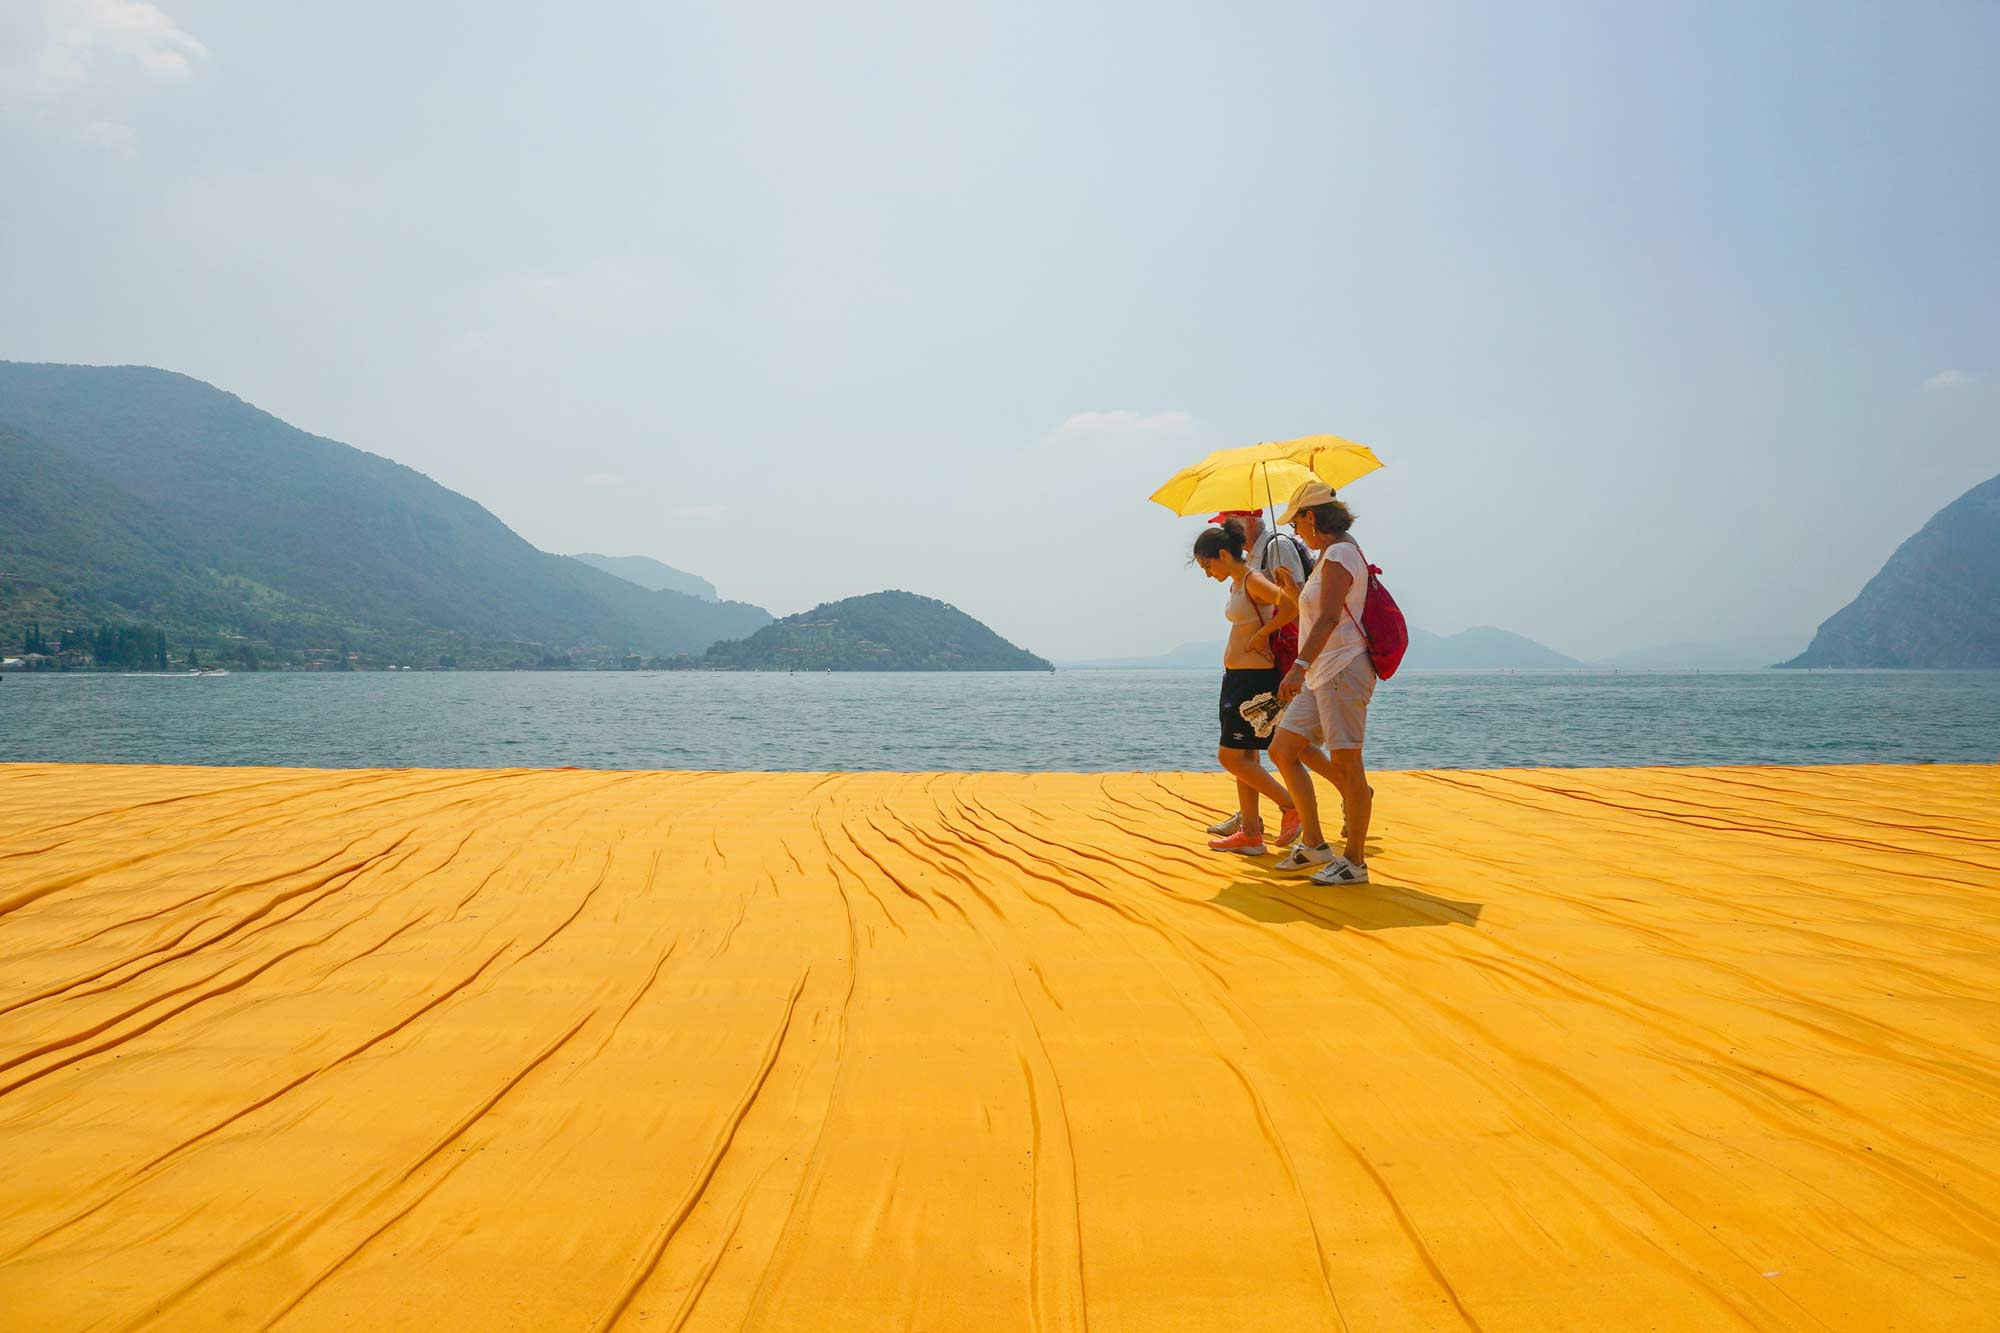 More than 40 years ago artist Christo developped the idea for the Floating Piers. After he found Lago d'Iseo in Northern Italy being the perfect place for this work, it went quick. More than 1.3 Million people had a striking haptic and visual experience walking on the orange Nylon tissue across the lake.